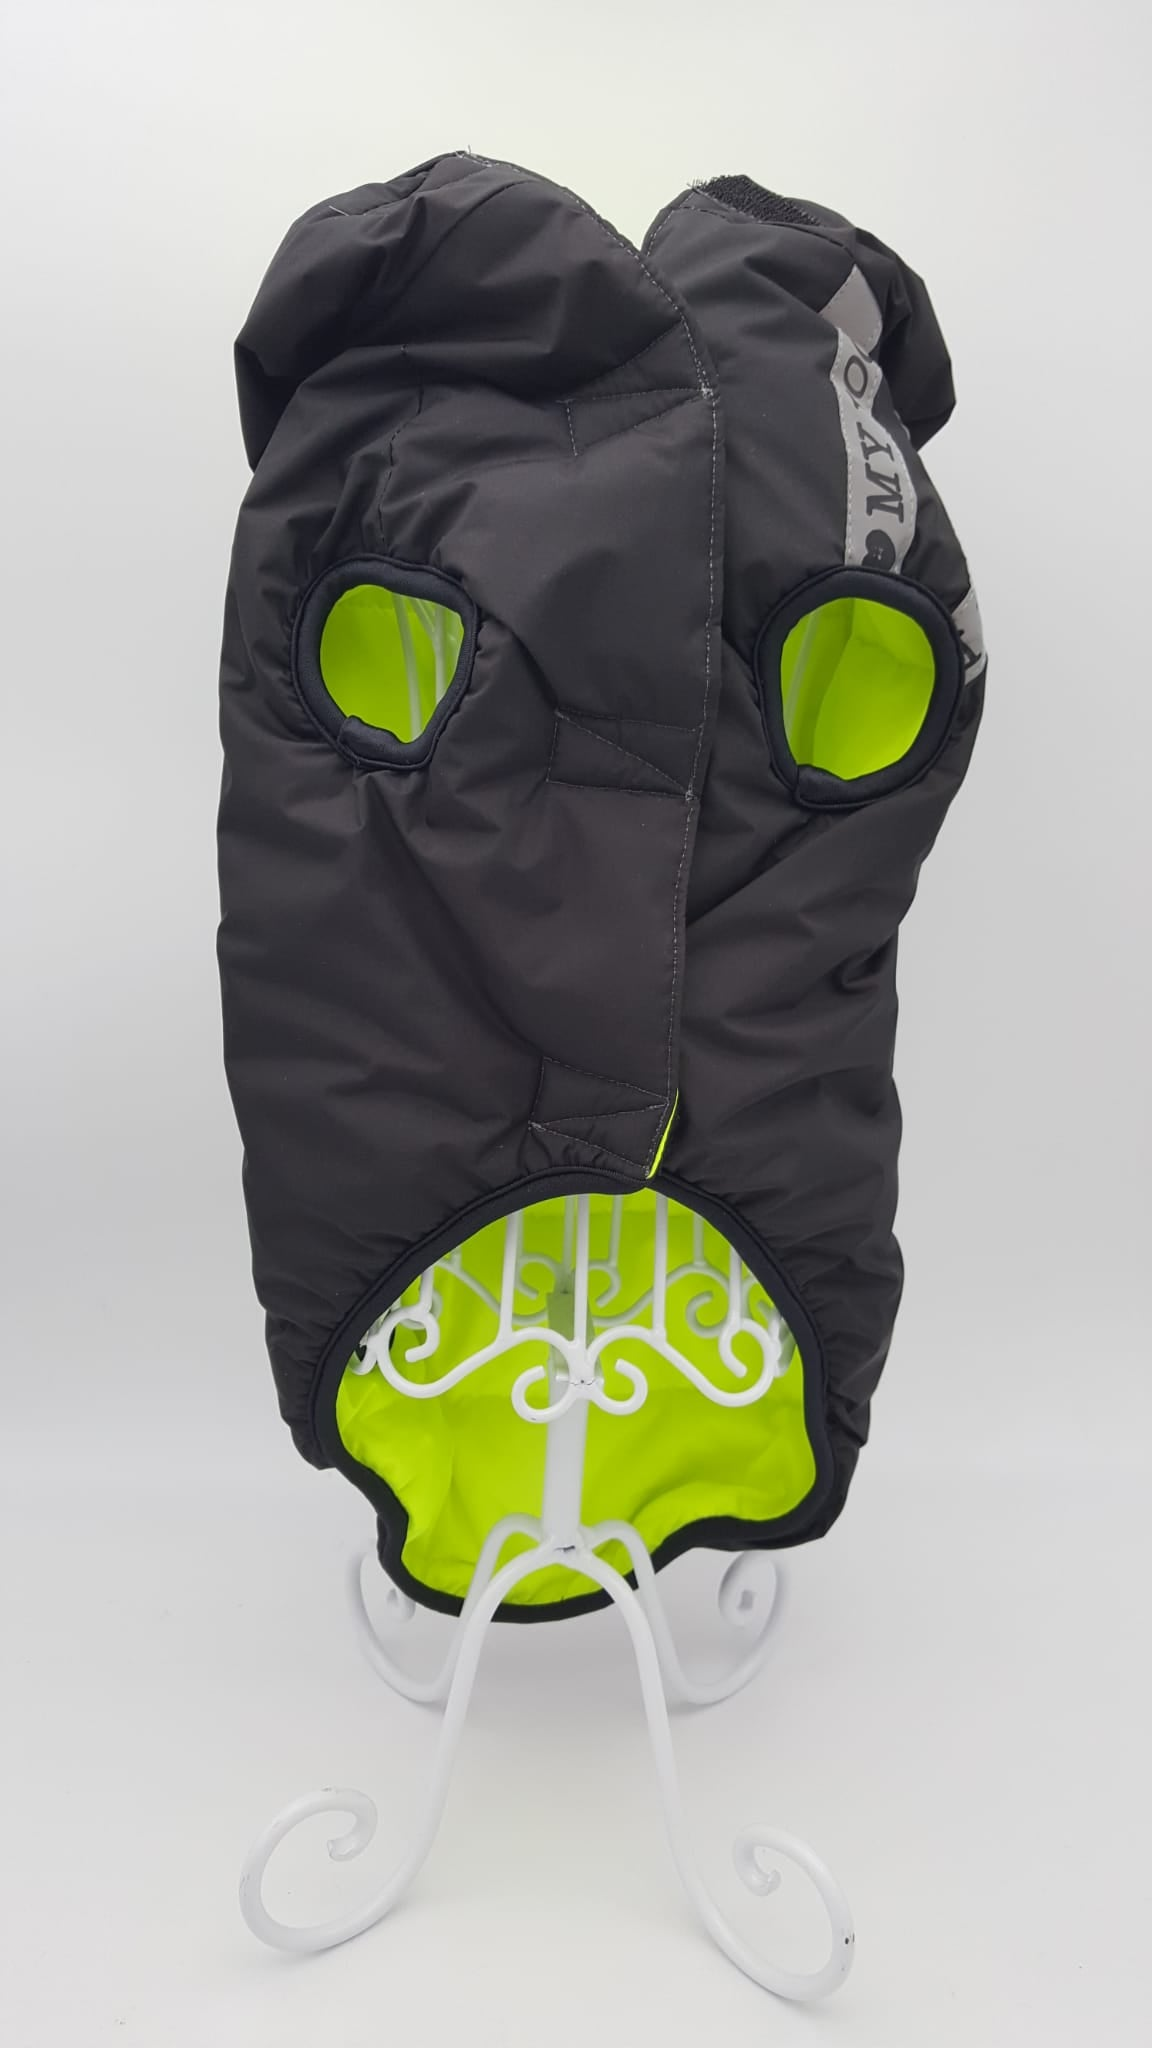 HIGHVISIBILITY DOUBLE ECOPUFFER FLUO YELLOW